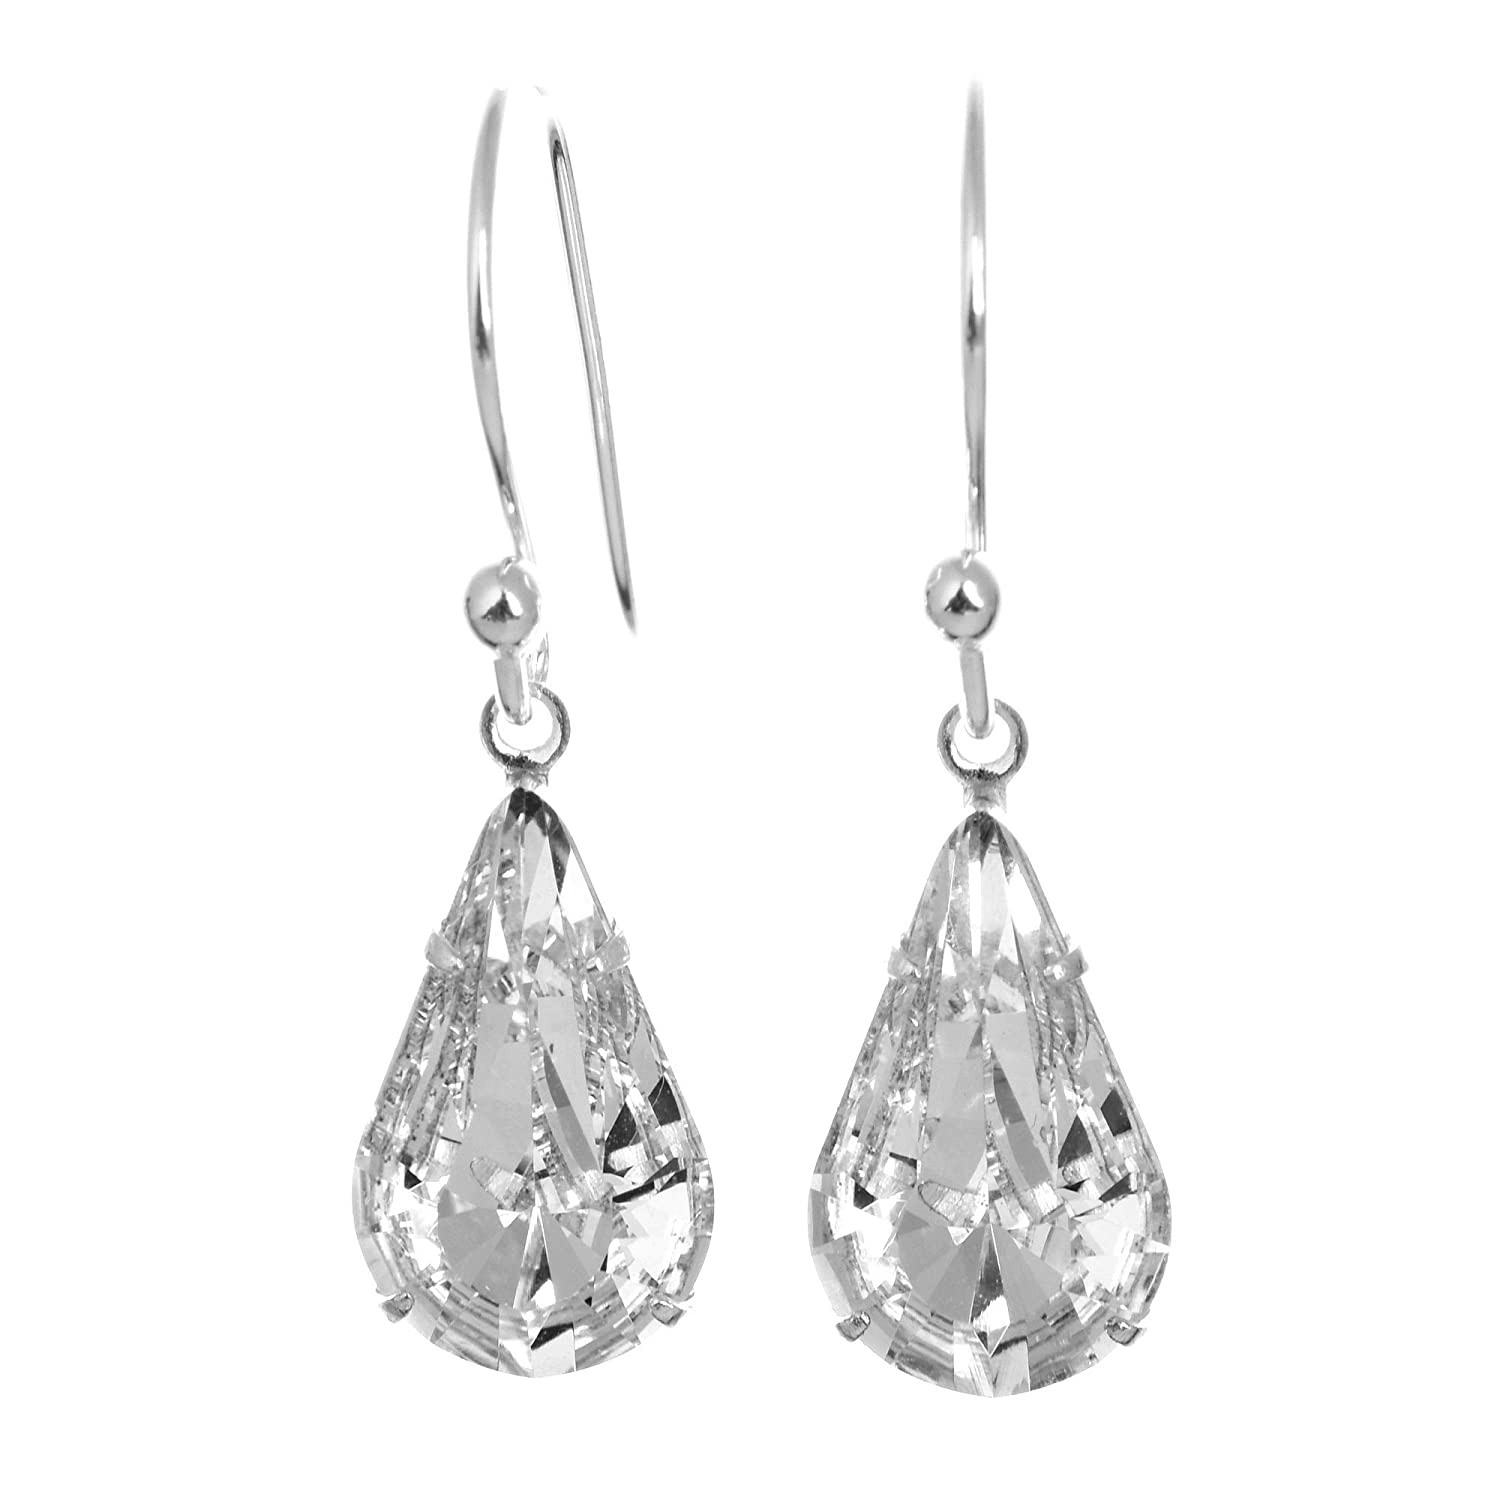 43309efd6 925 Sterling Silver drop earrings for women made with sparkling White  Diamond teardrop crystal from Swarovski®. London jewellery box.